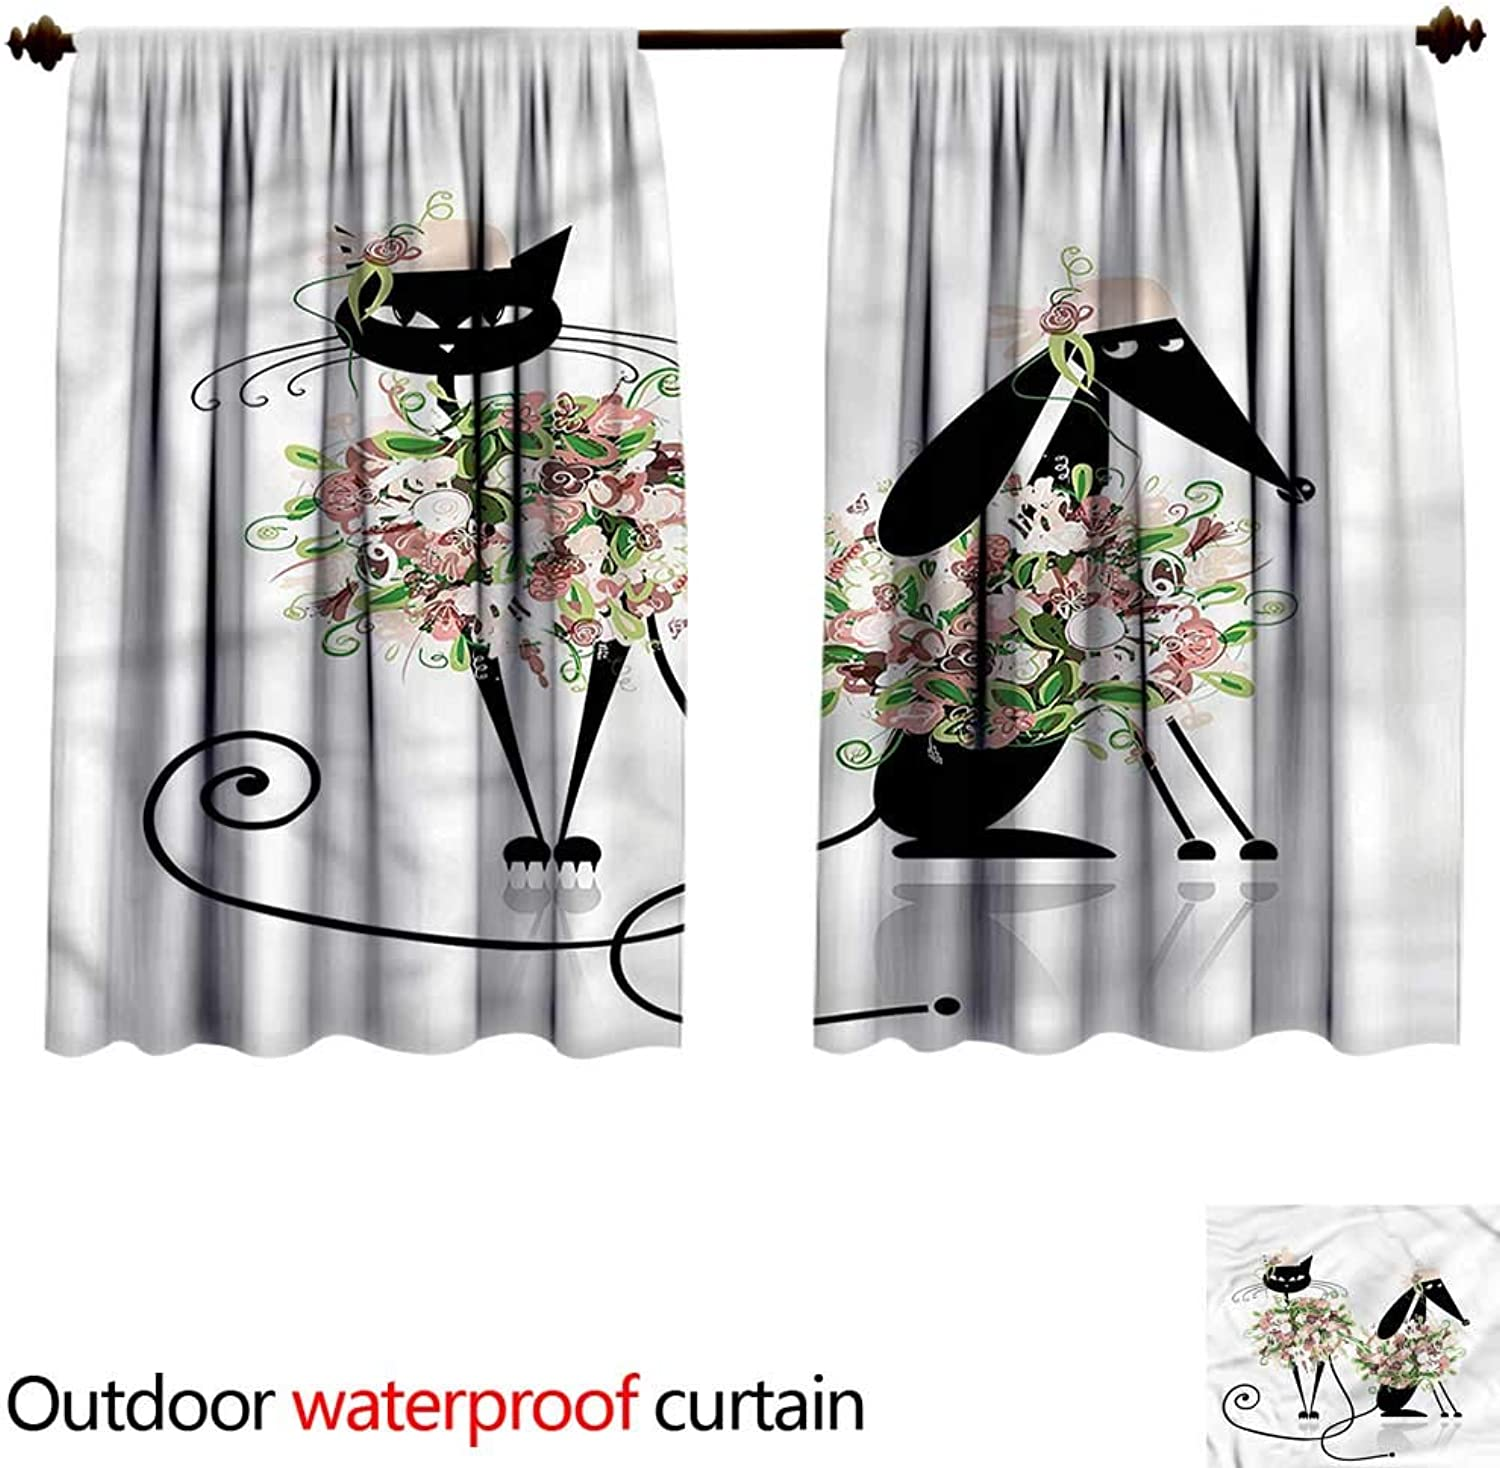 BlountDecor UPF Outdoor curtainAntiWater W55 x L45(140cm x 128cm) Animals,Cat and Dog Floral Clothes